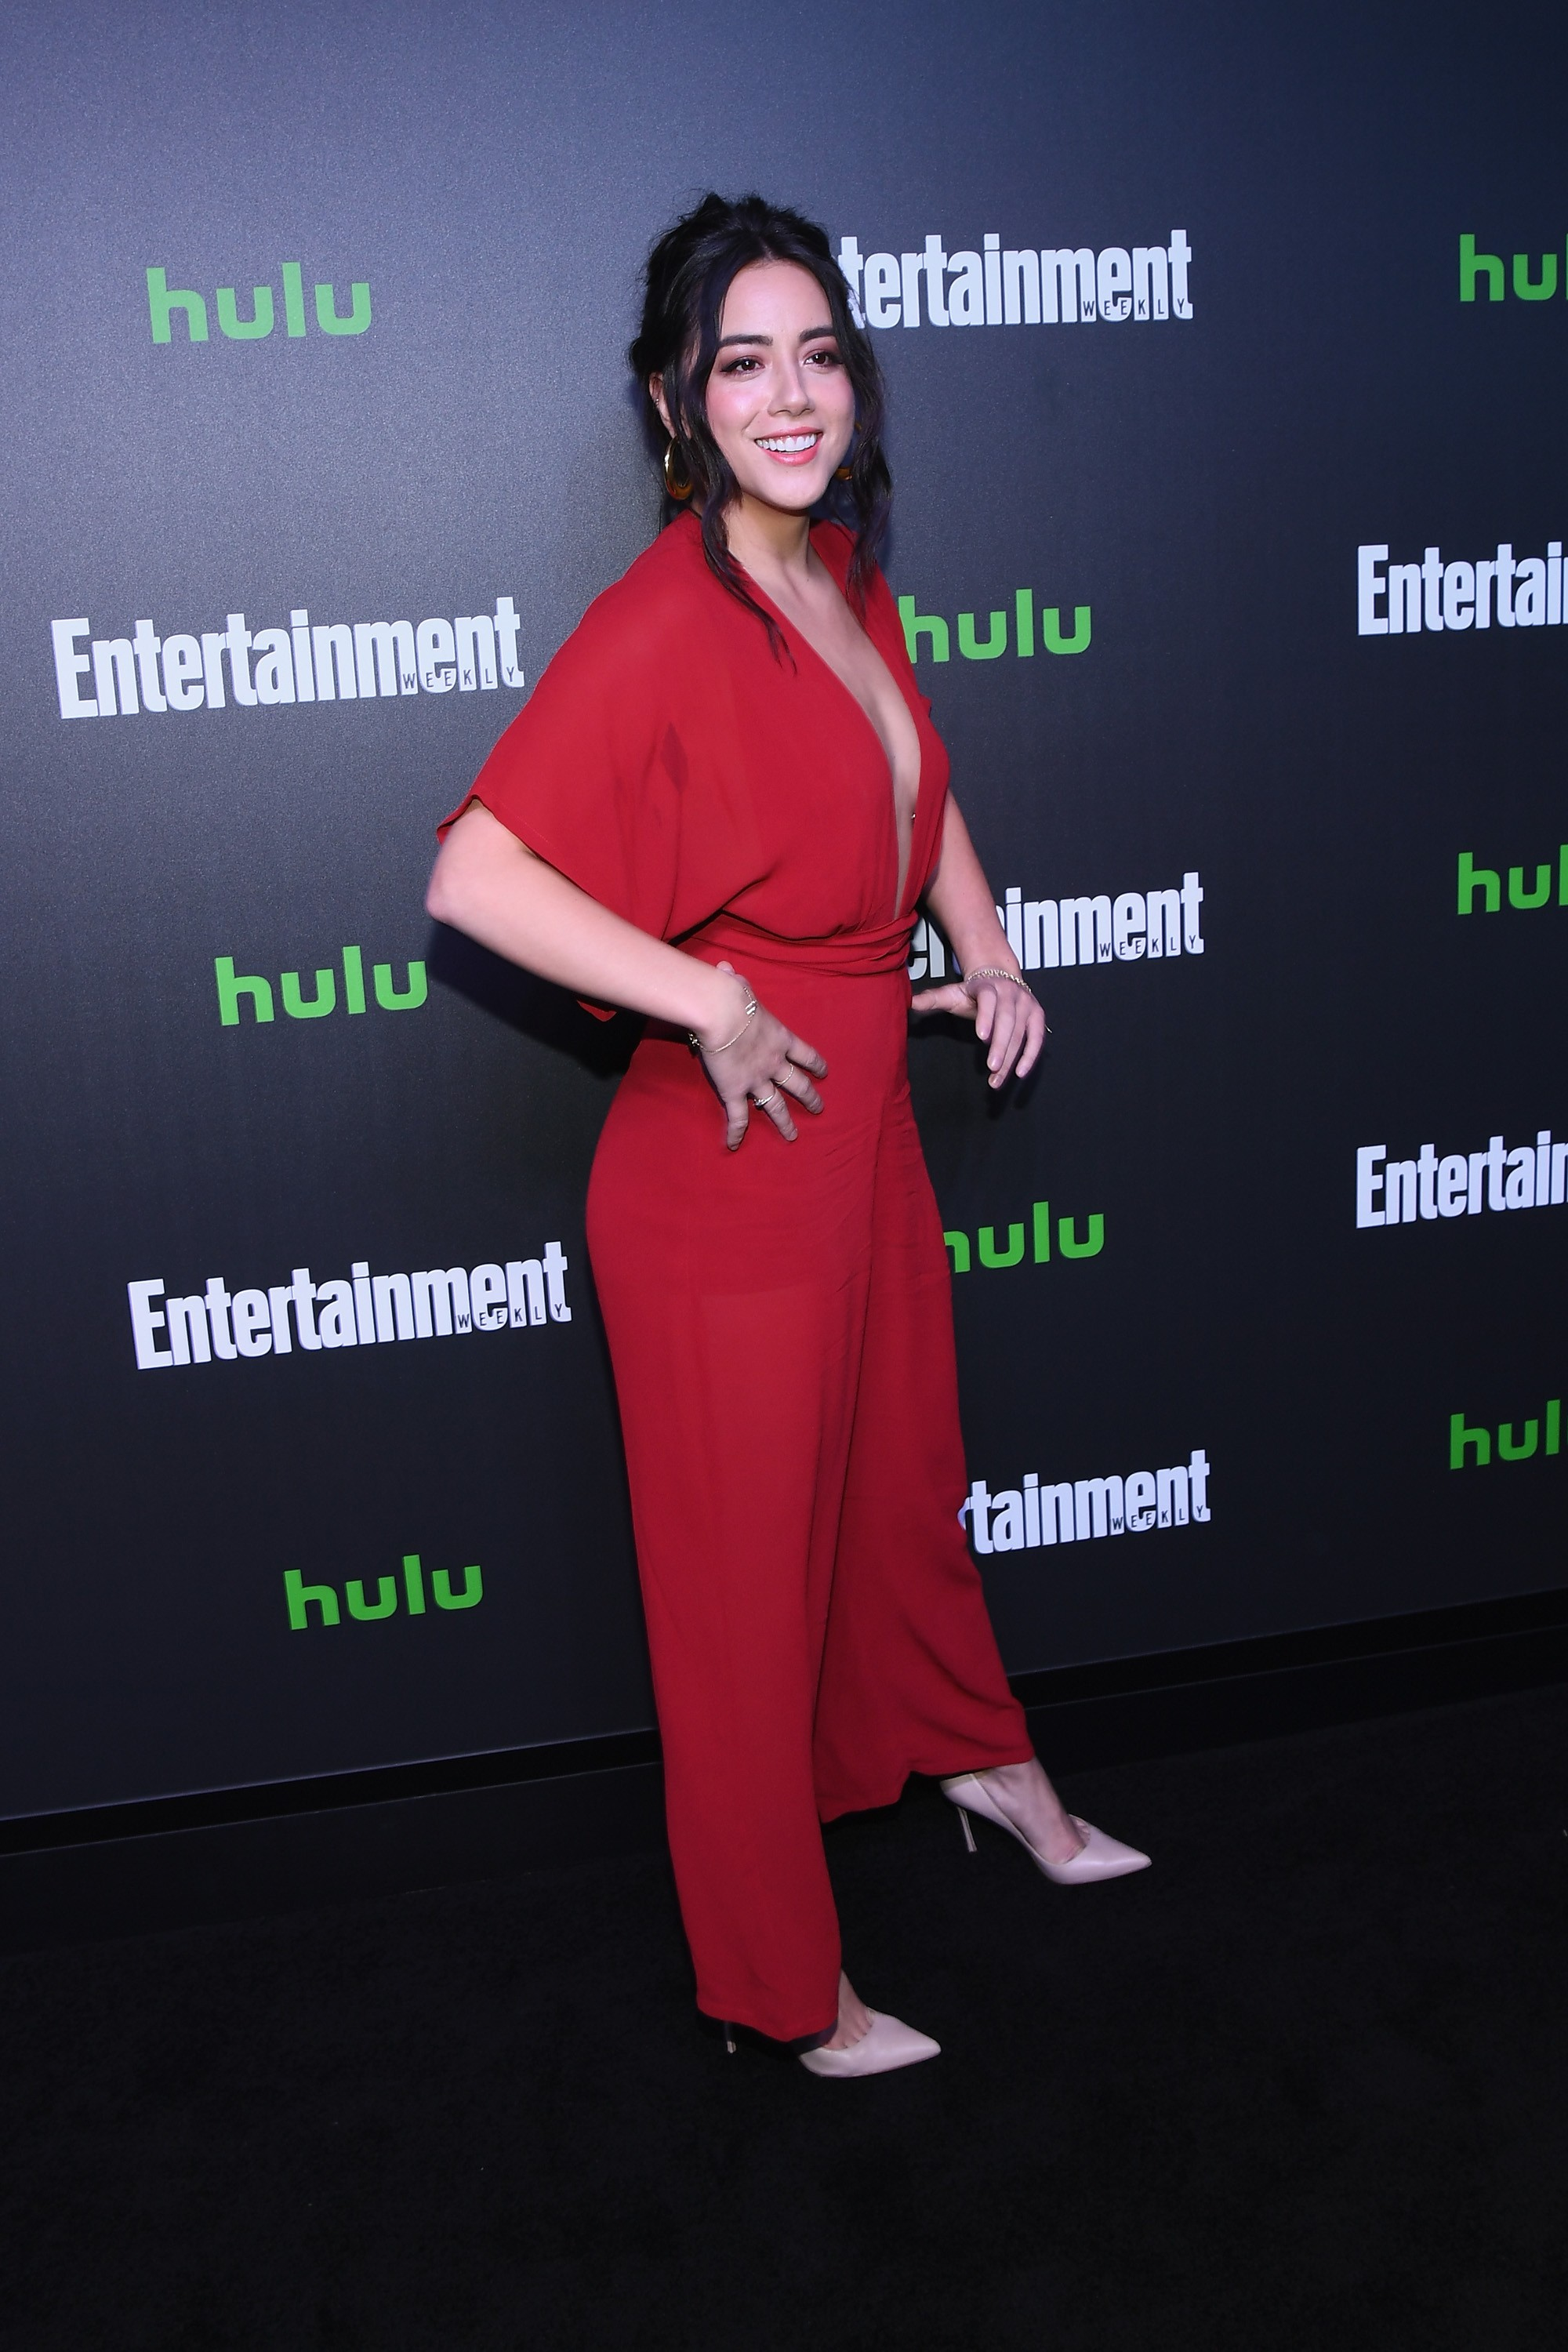 Spear jamie lynn sigler naked